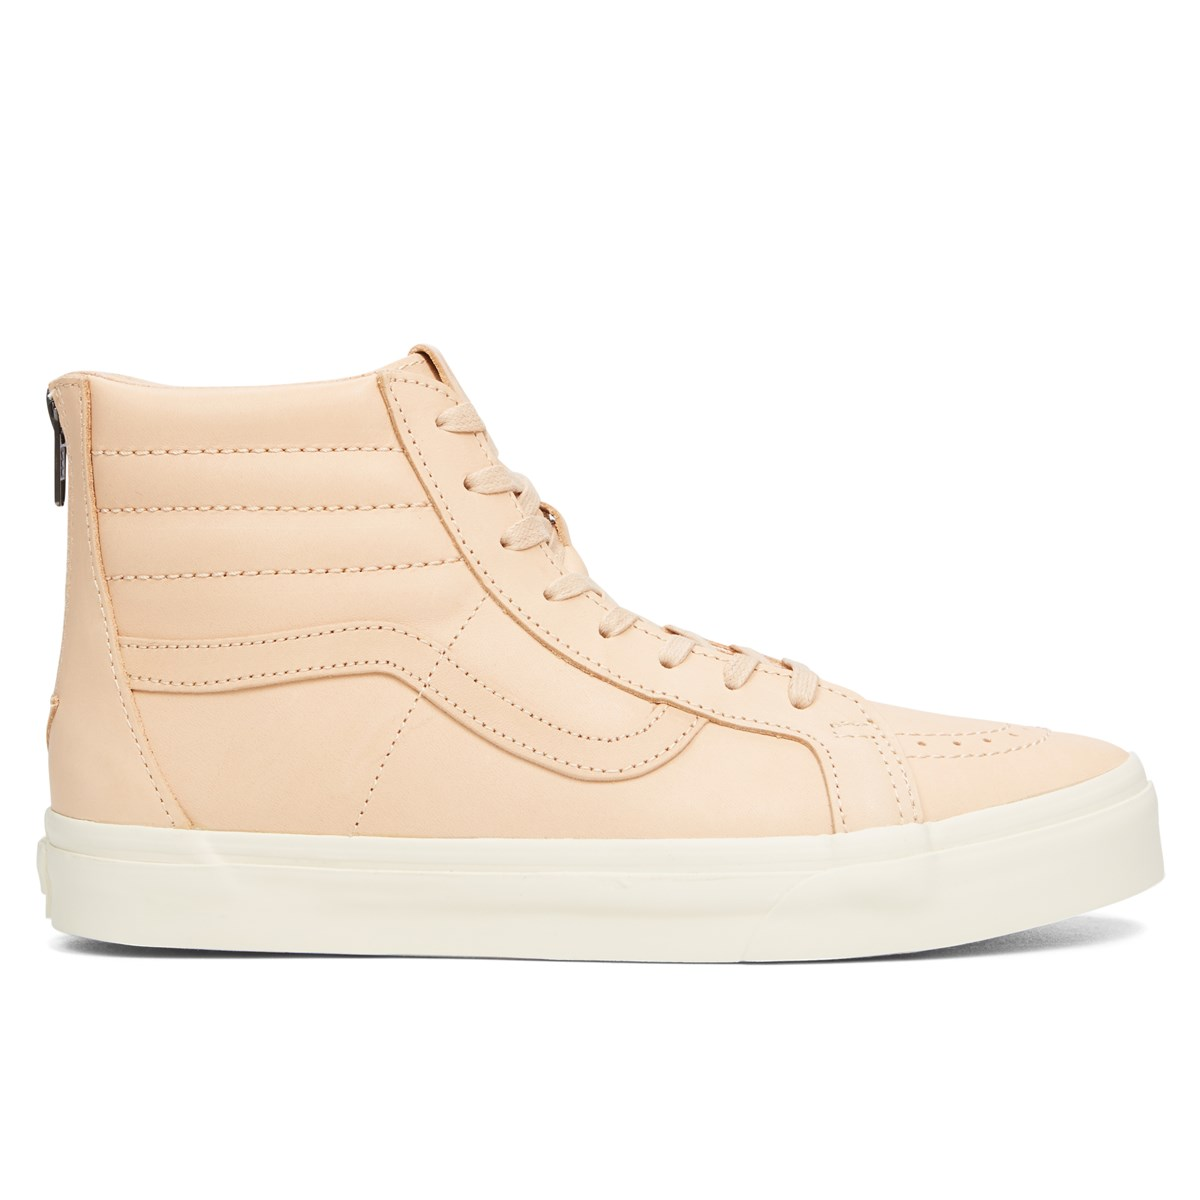 Men's SK8-HI Reissue Zip DX Sneaker